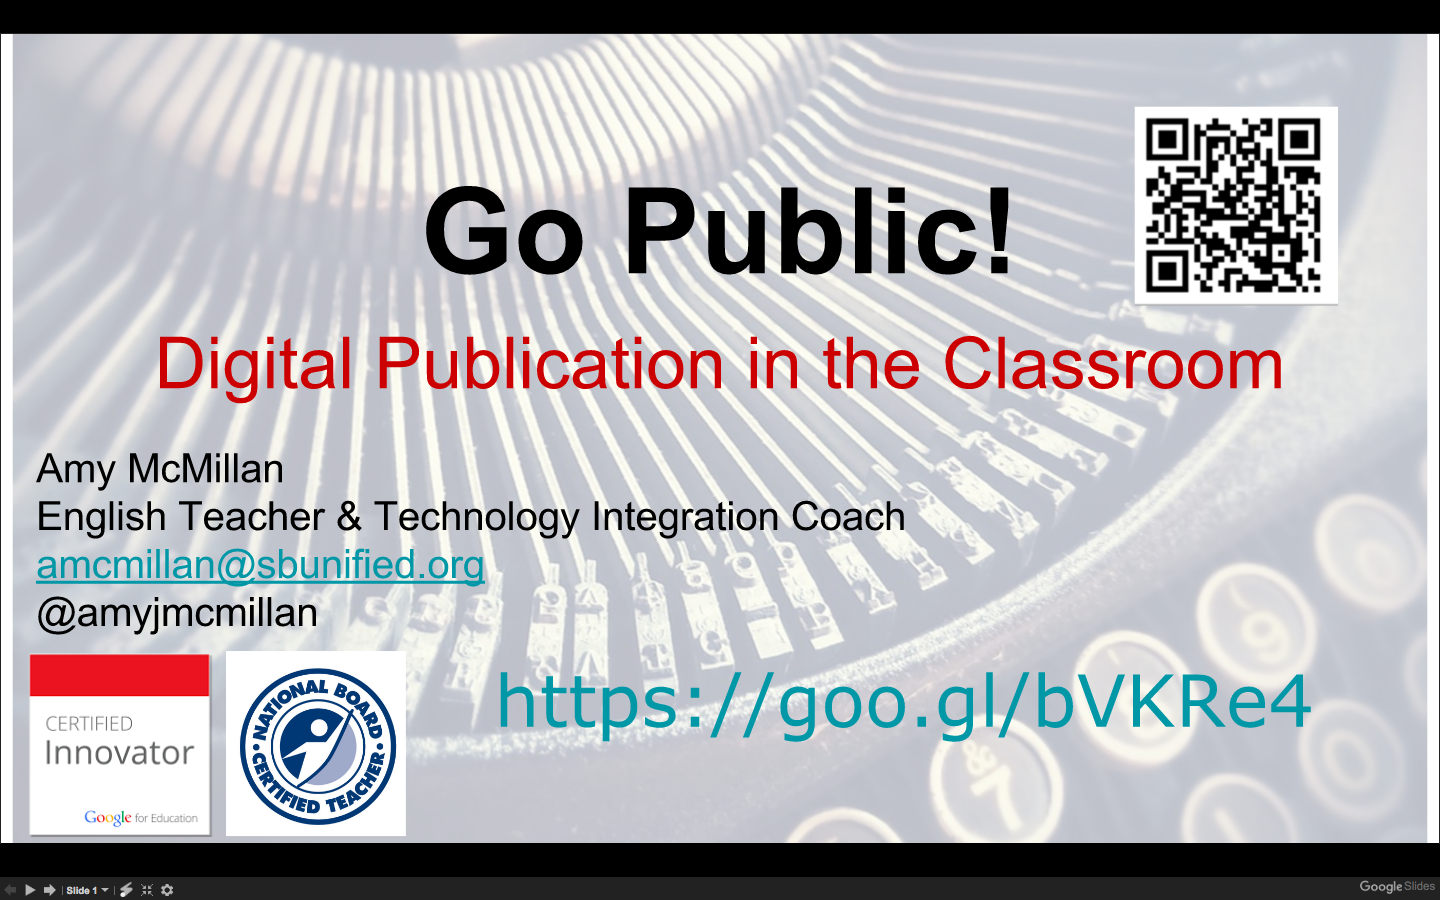 Go Public! Digital Publication in the Classroom